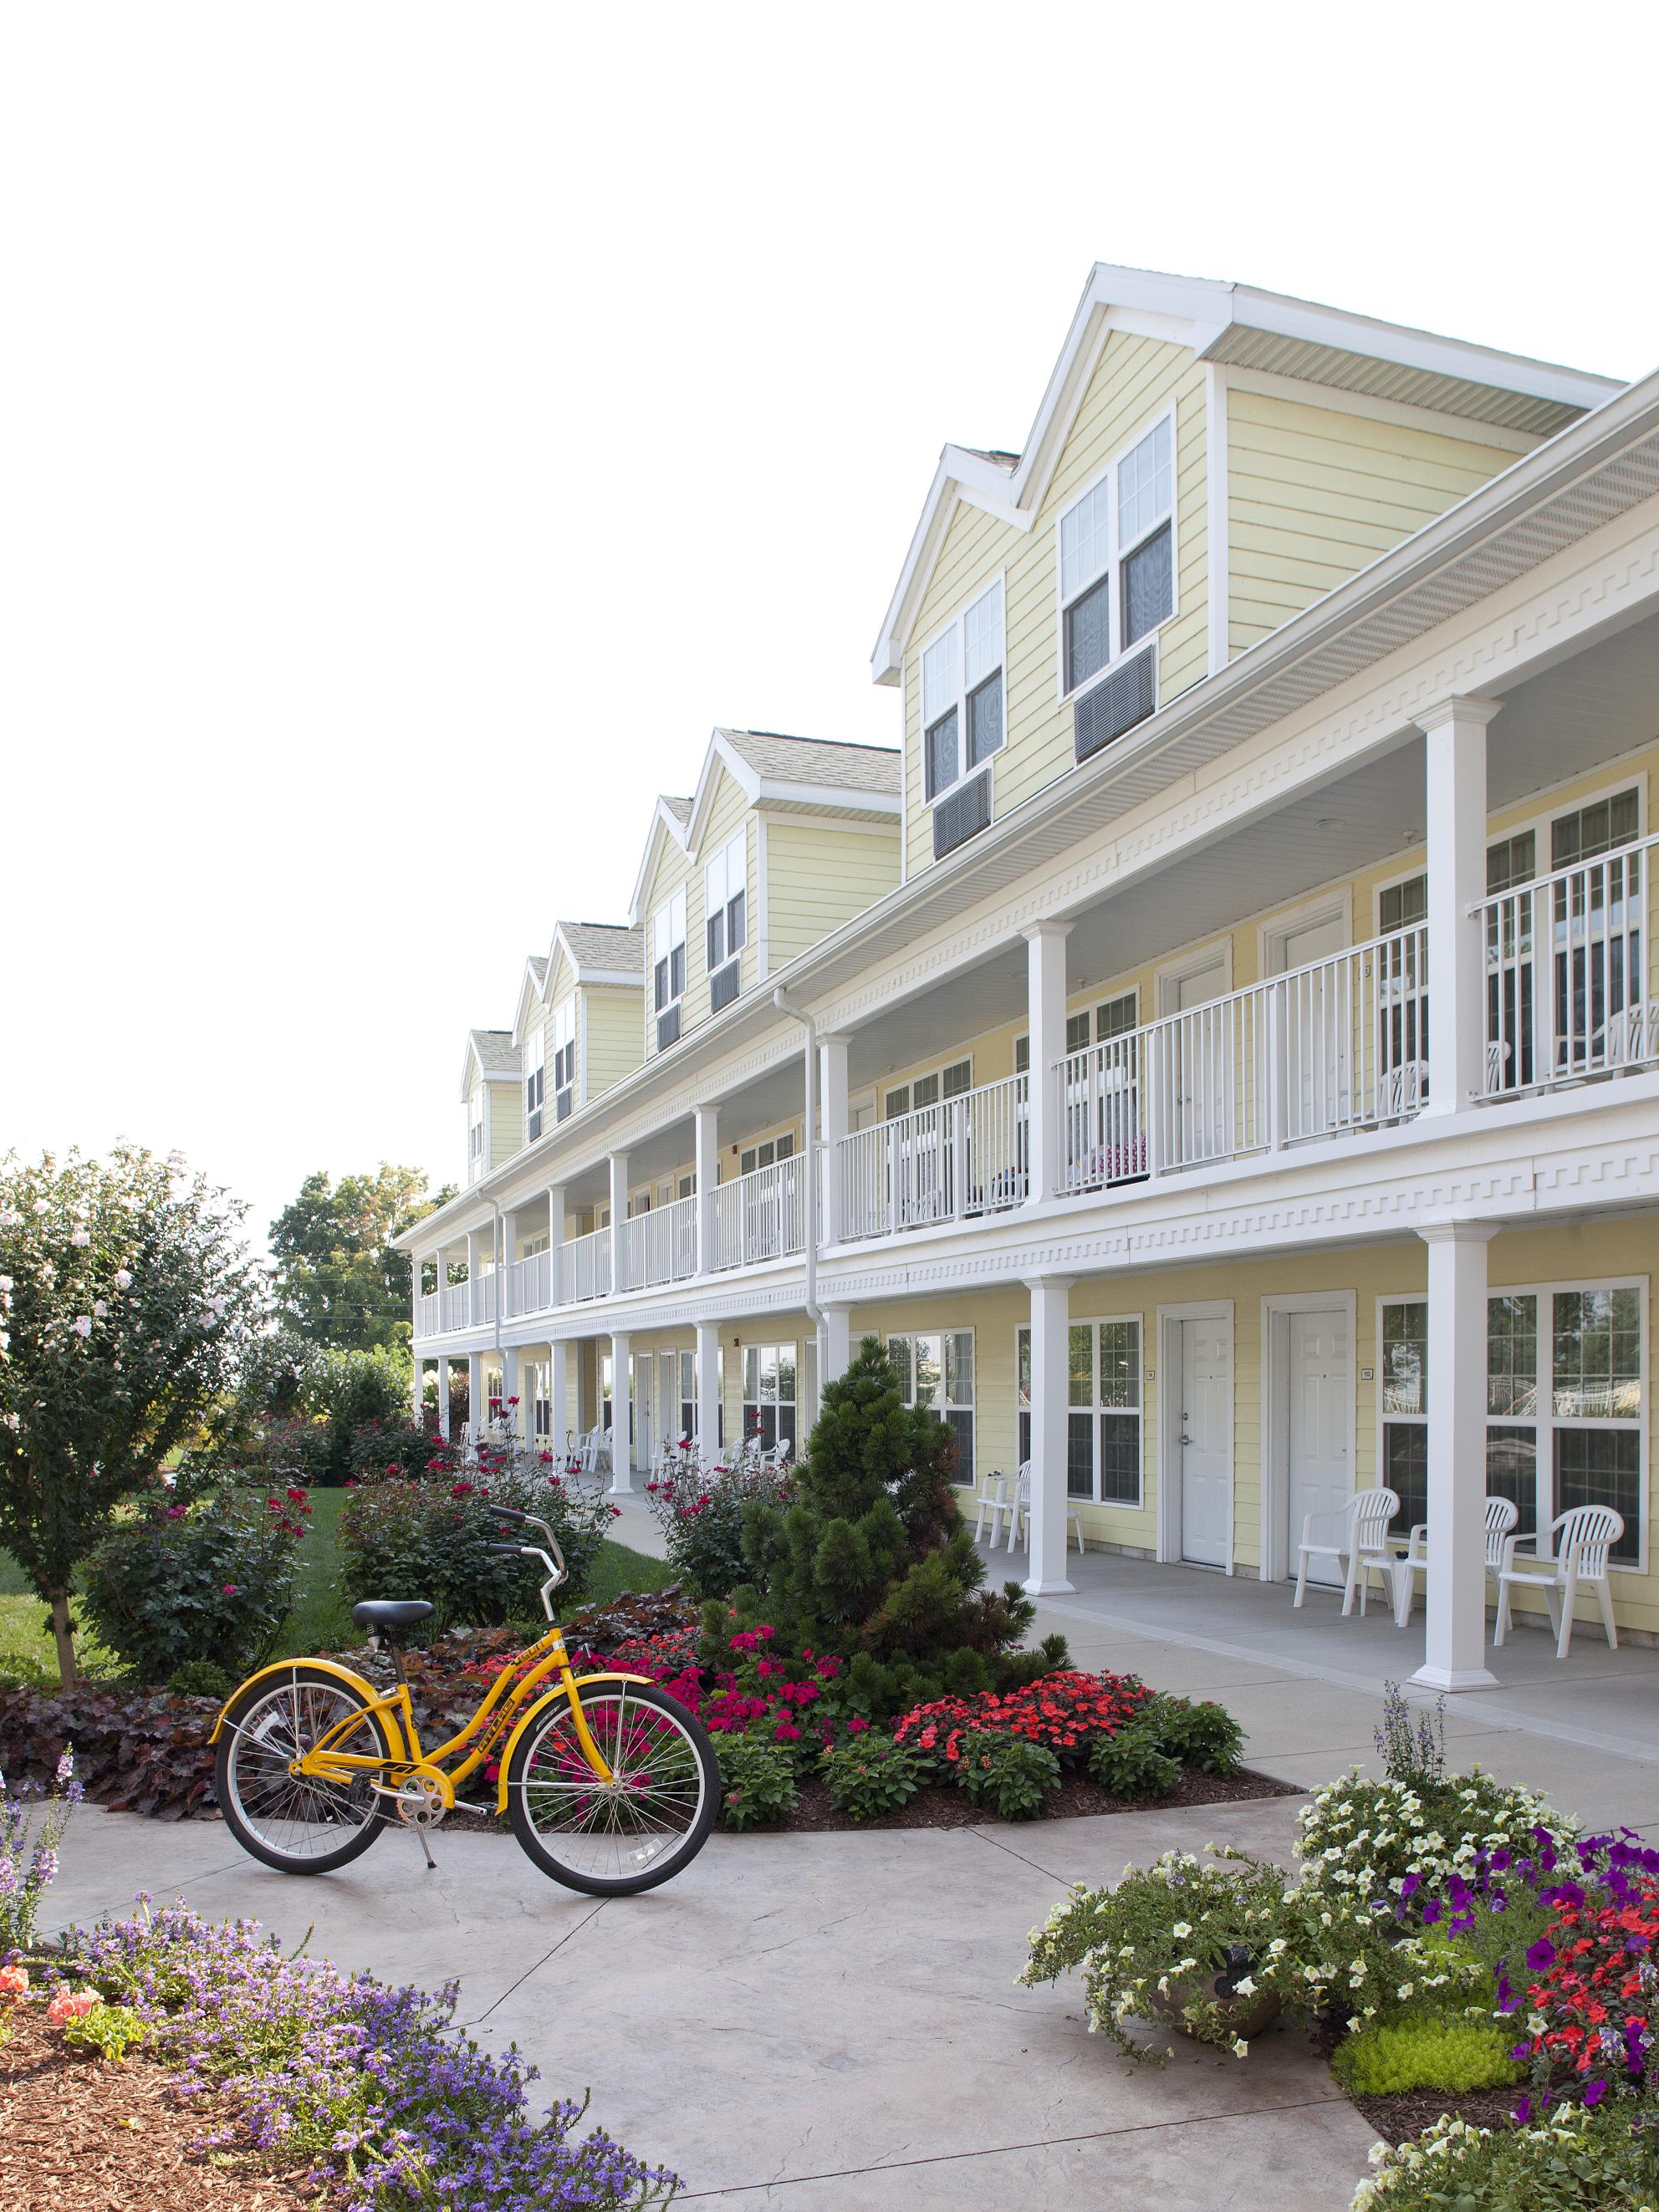 Kelleys Island, Ohio: Kelleys Island Venture Resort